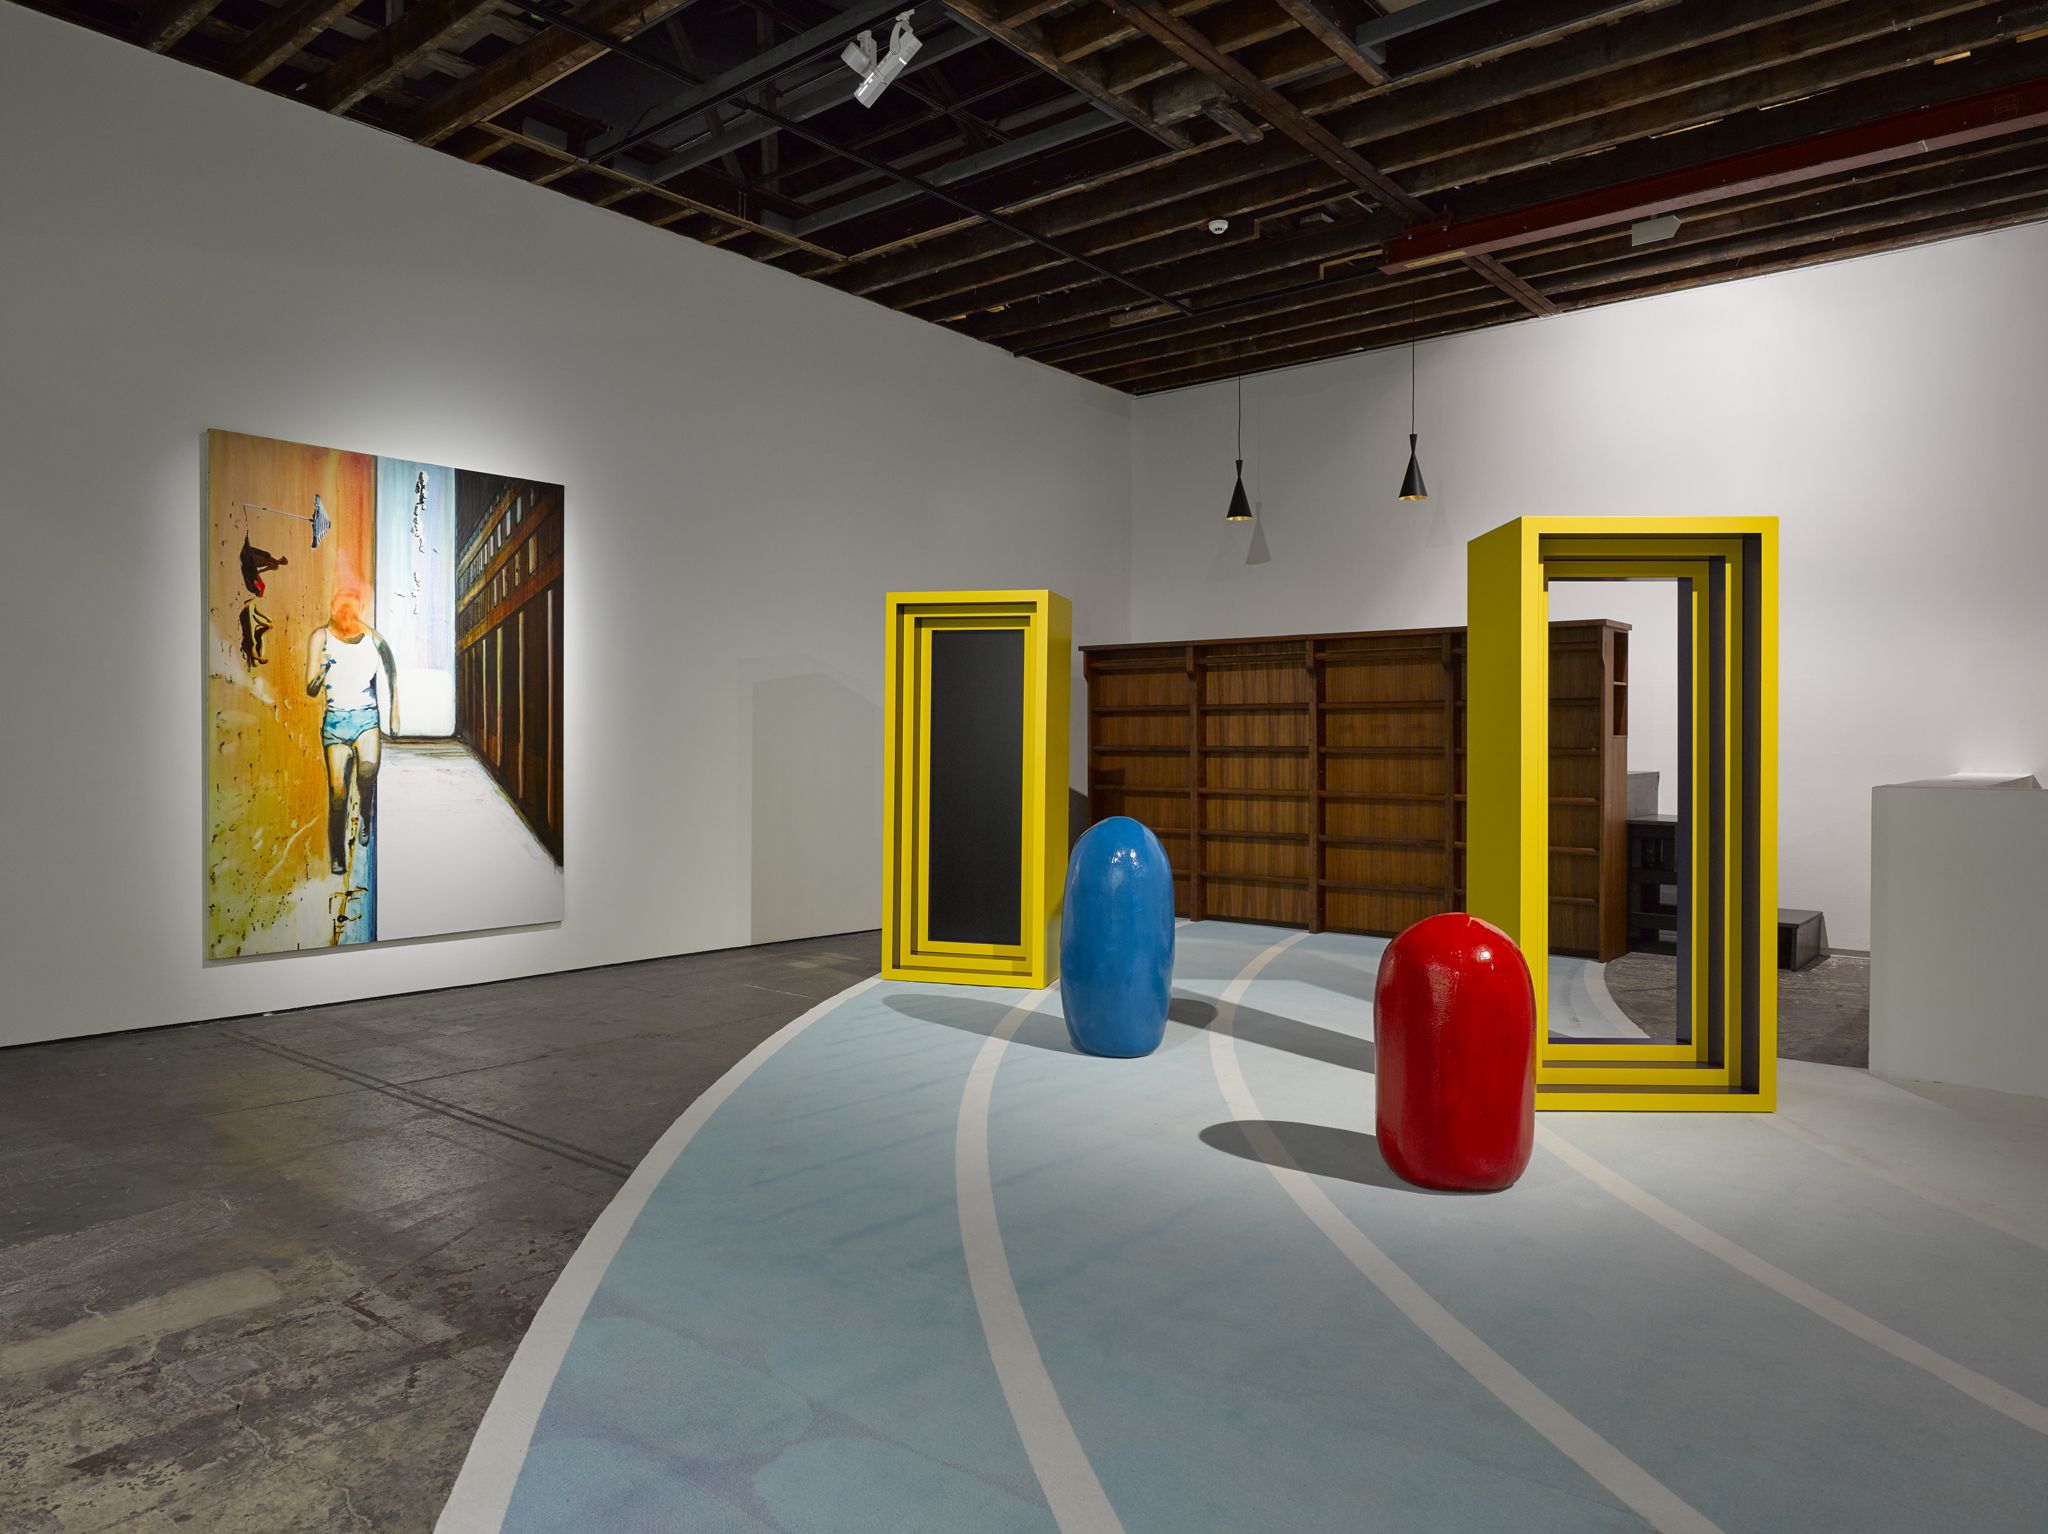 John Kørner, Installation view, Life in a Box, © John Kørner. Courtesy the artist and Victoria Miro, London/Venice